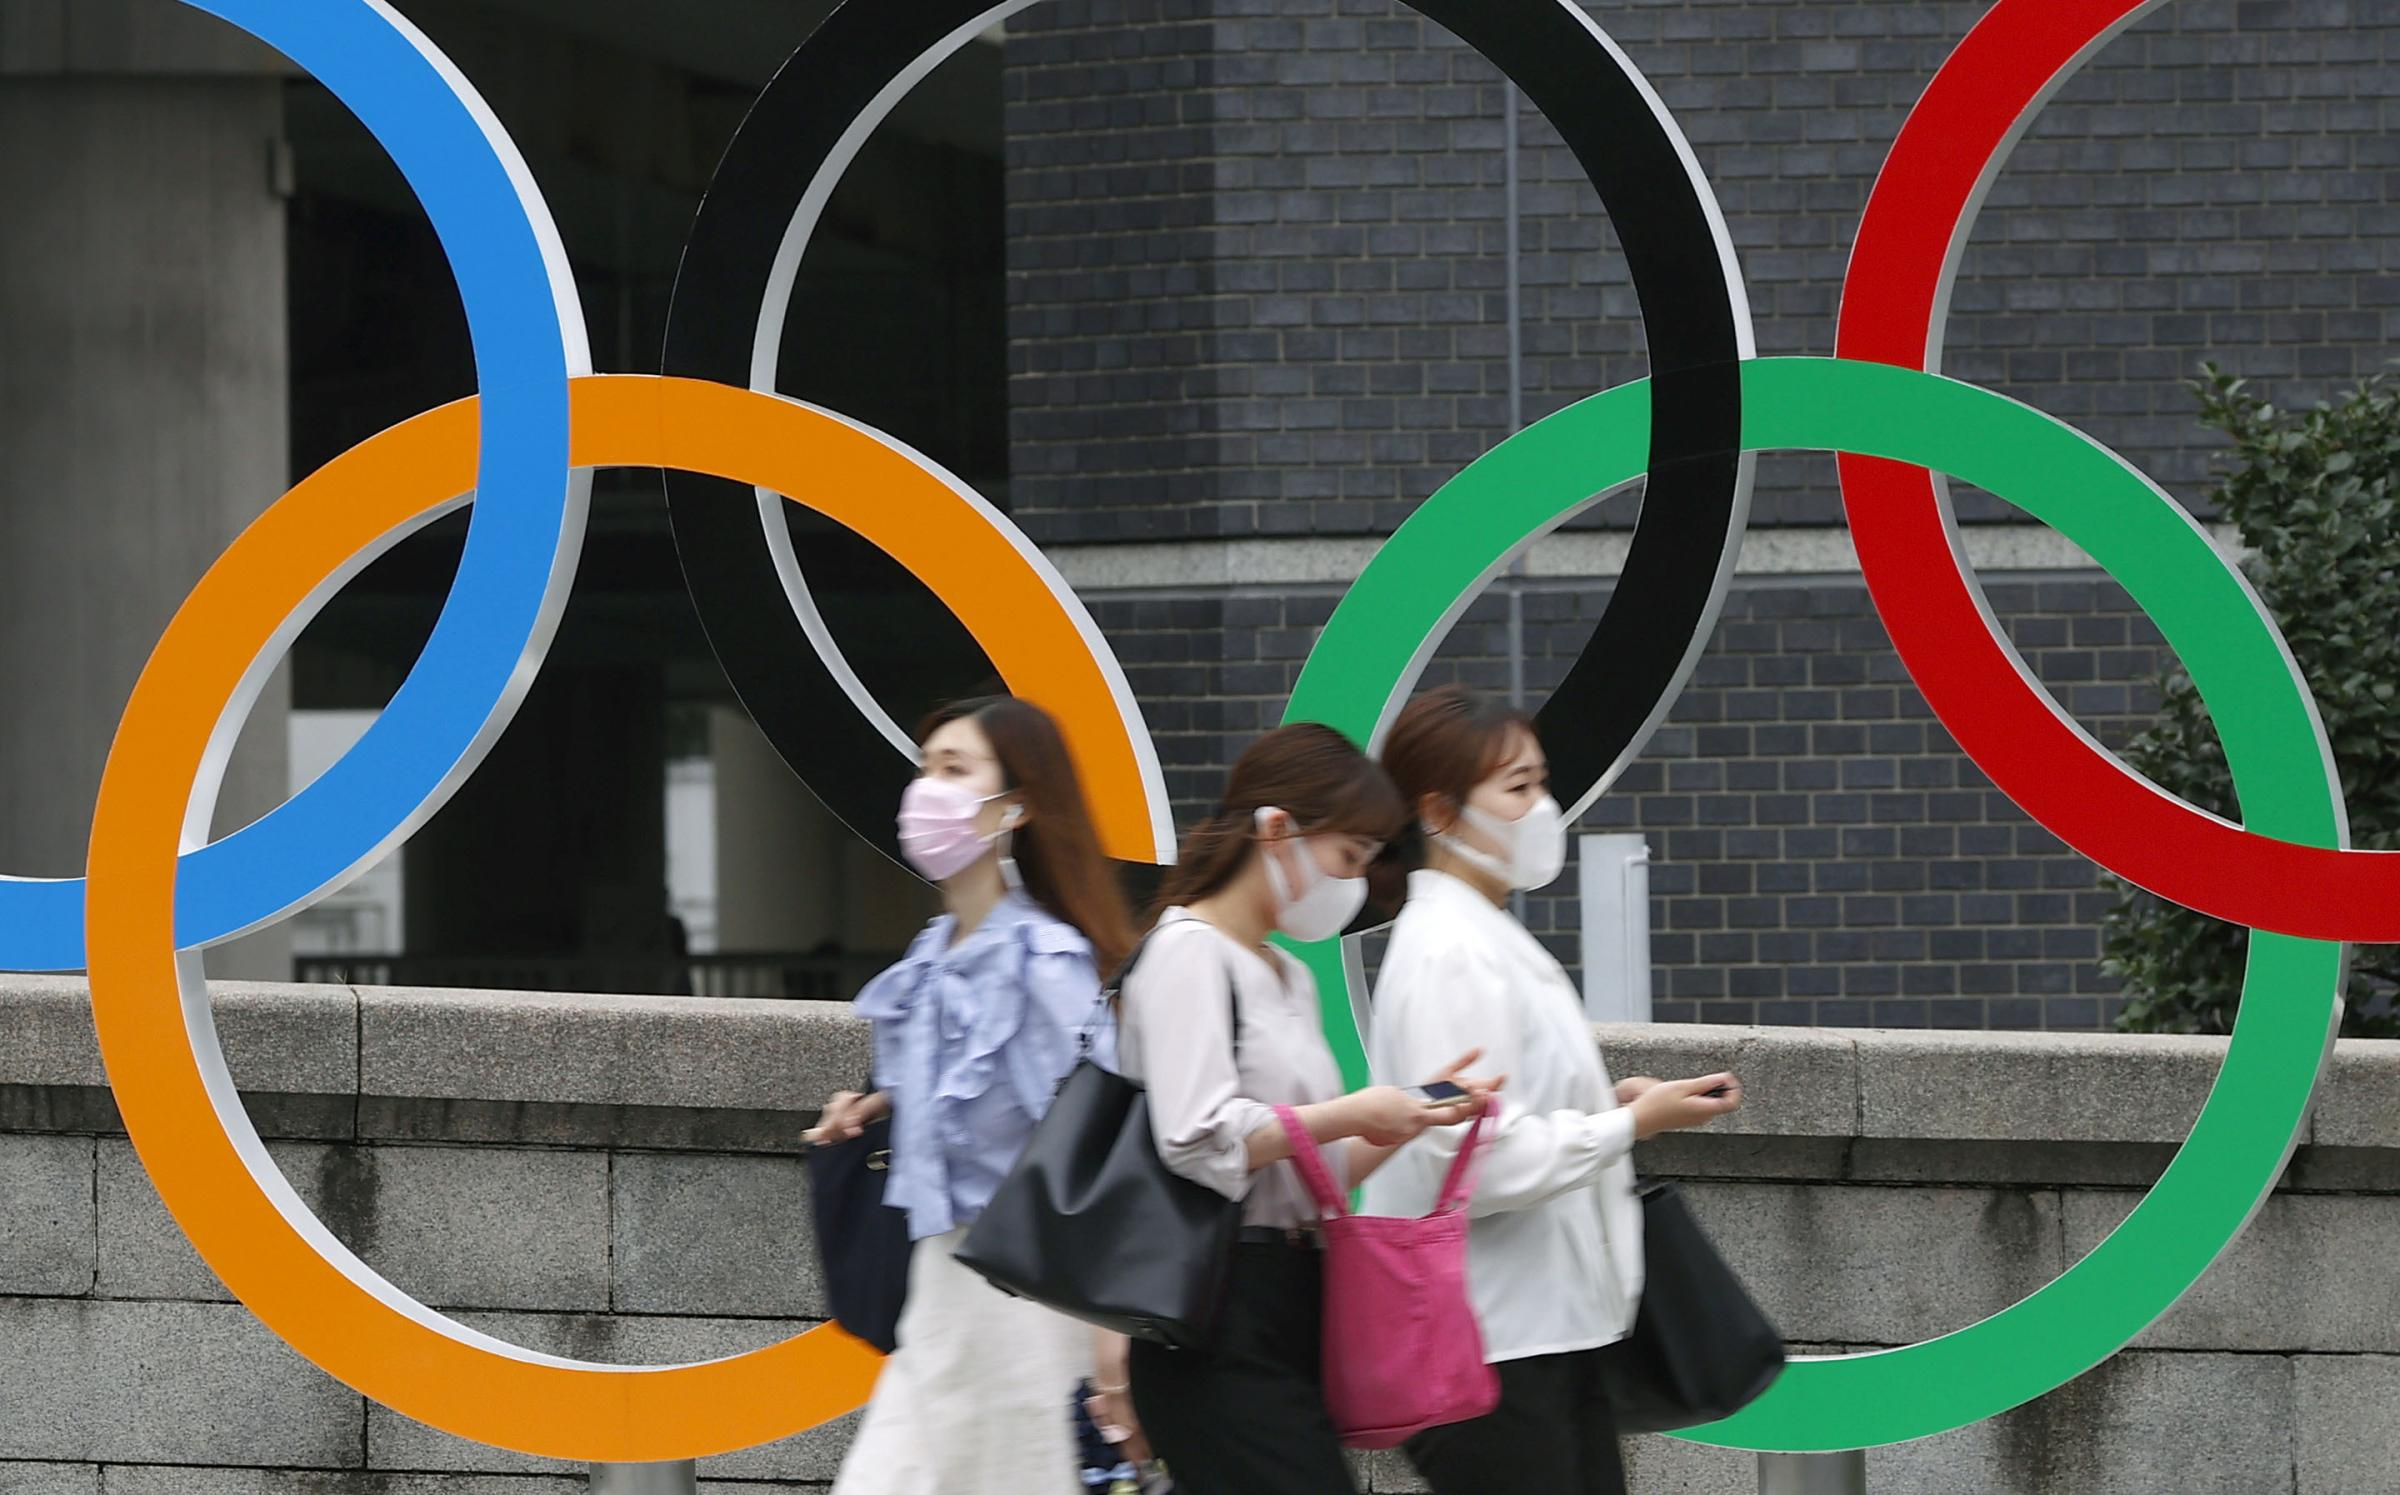 Tokyo Olympic opening ceremony: What time in UK and how to watch